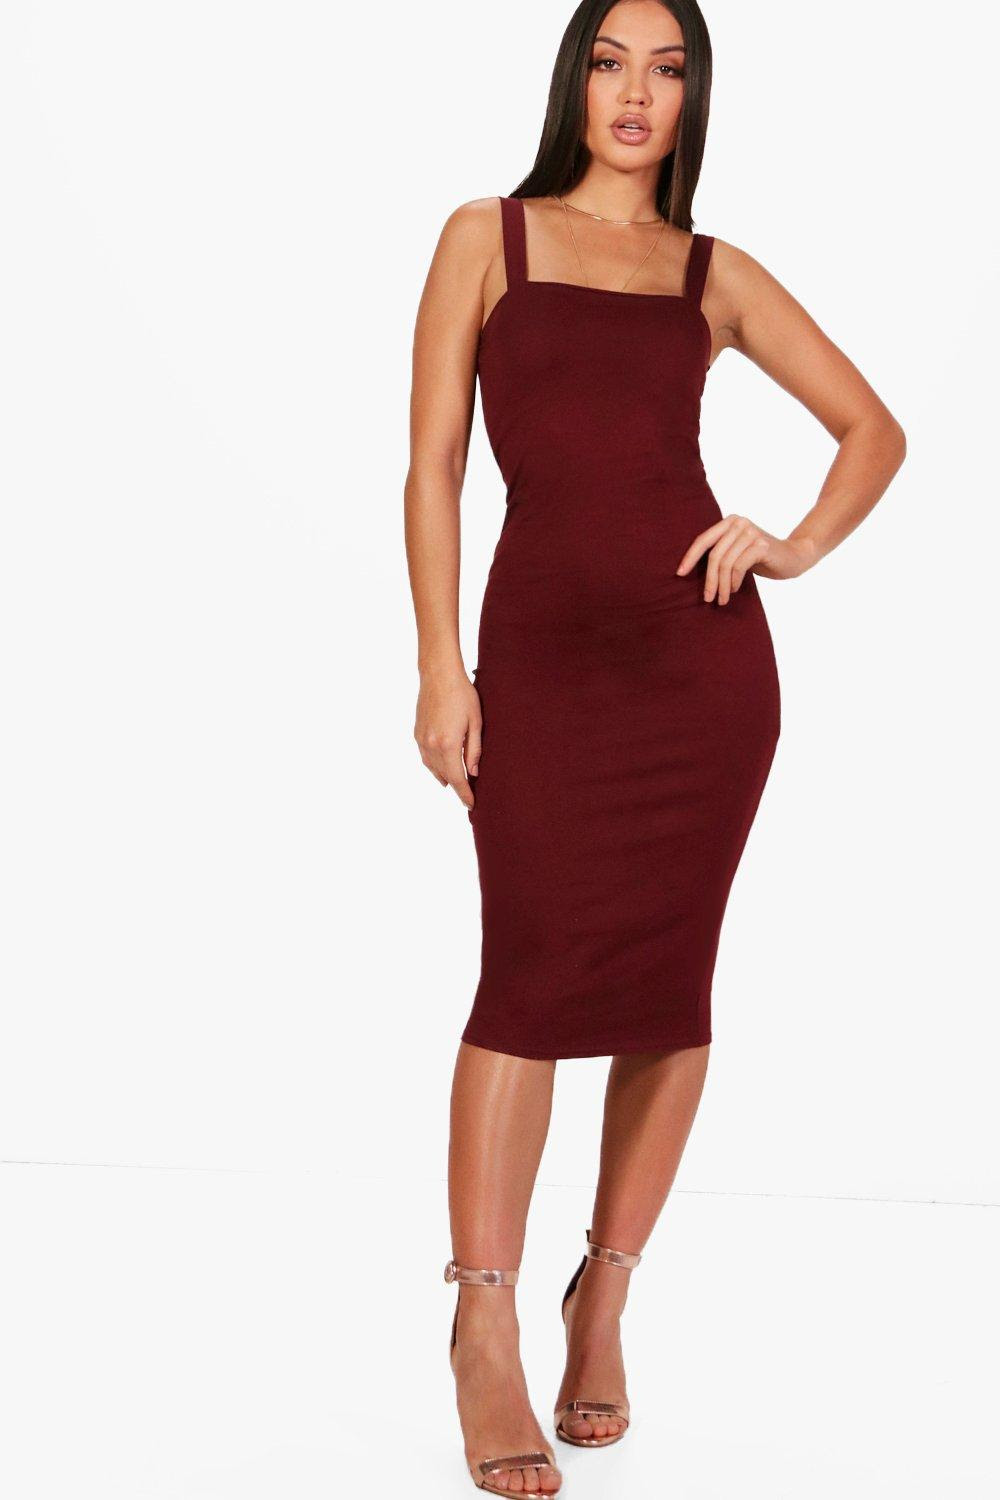 Square back bodycon dress open boohoo neck near